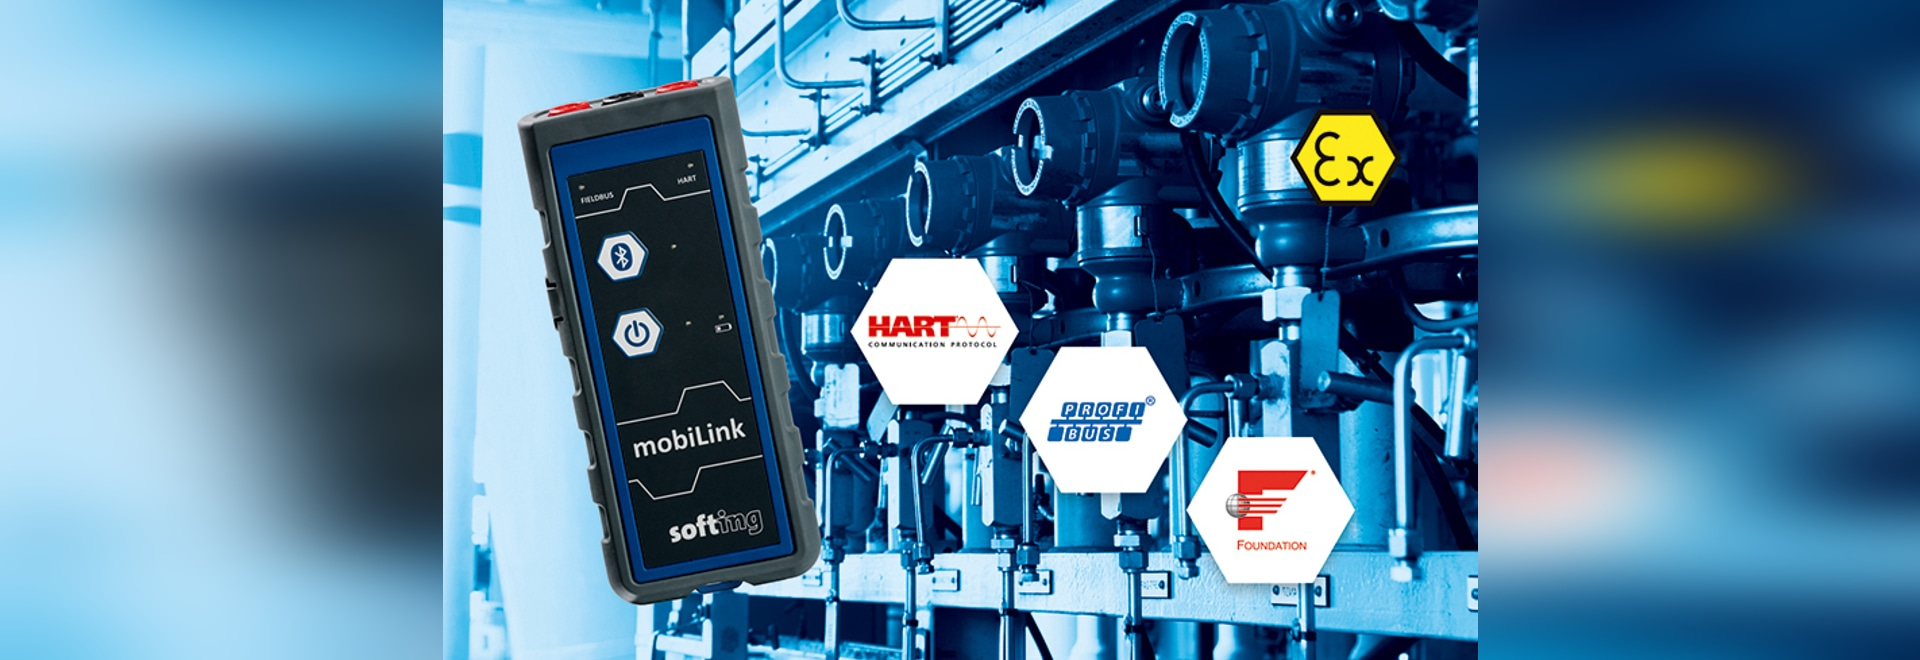 Softing expands sales network for mobiLink Interface in Australia